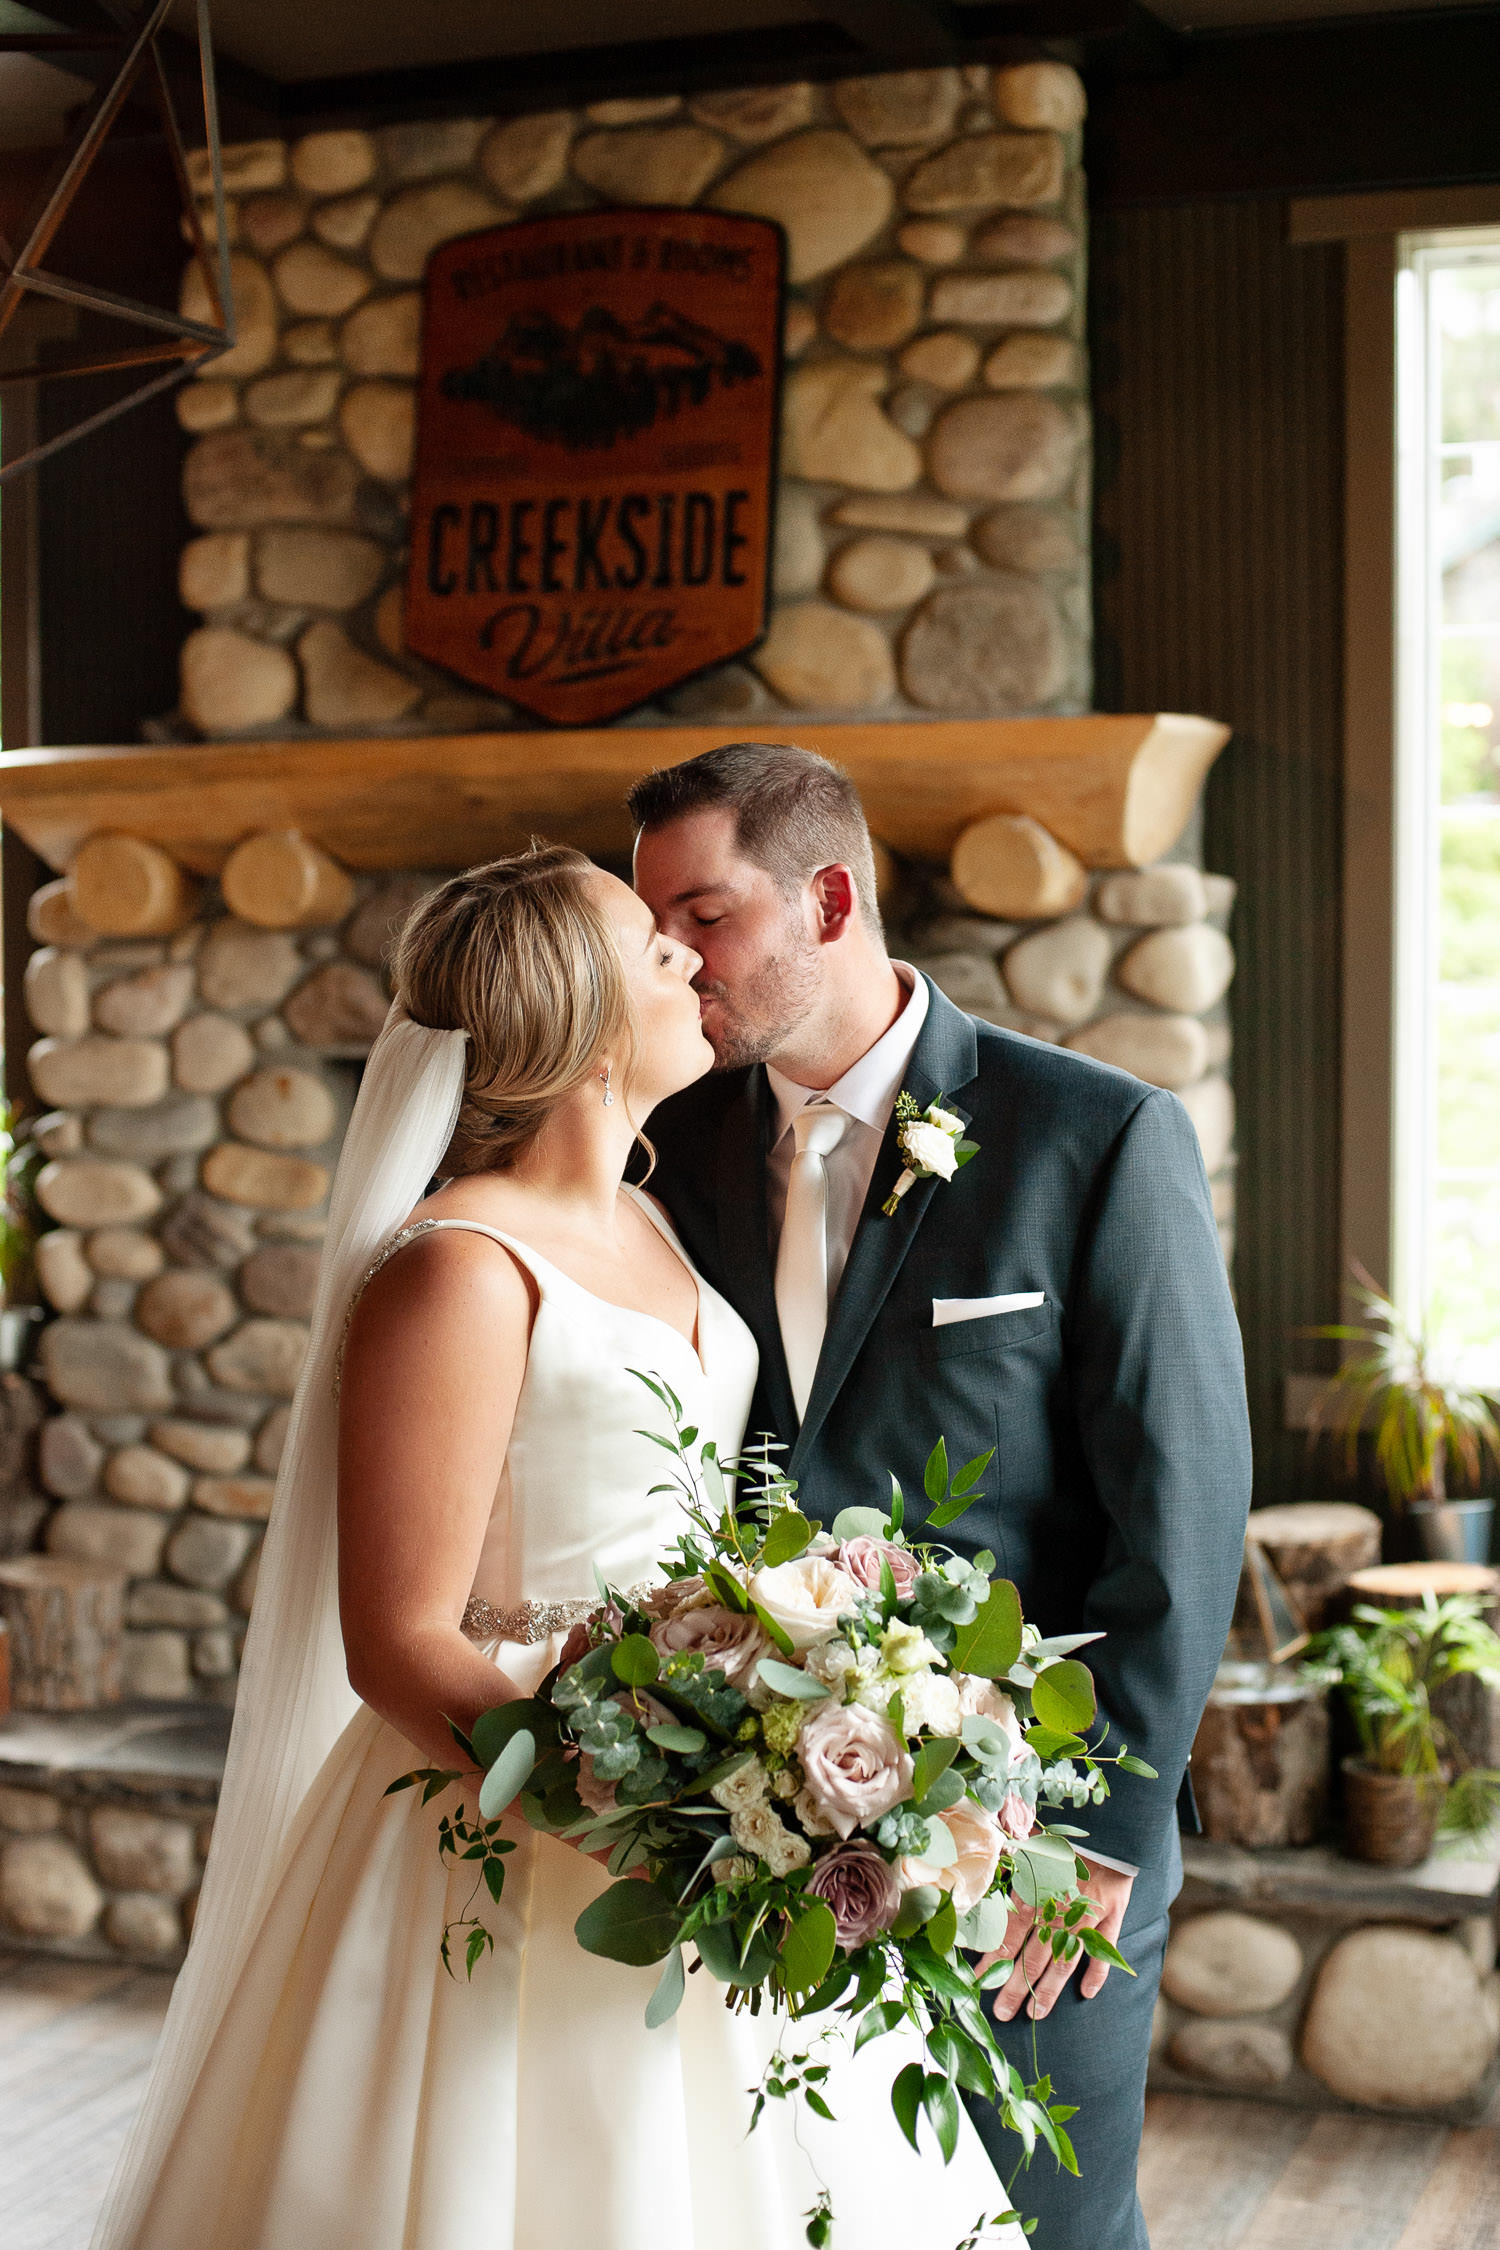 bride and groom kiss at their Creekside Villa wedding captured by Tara Whittaker Photography